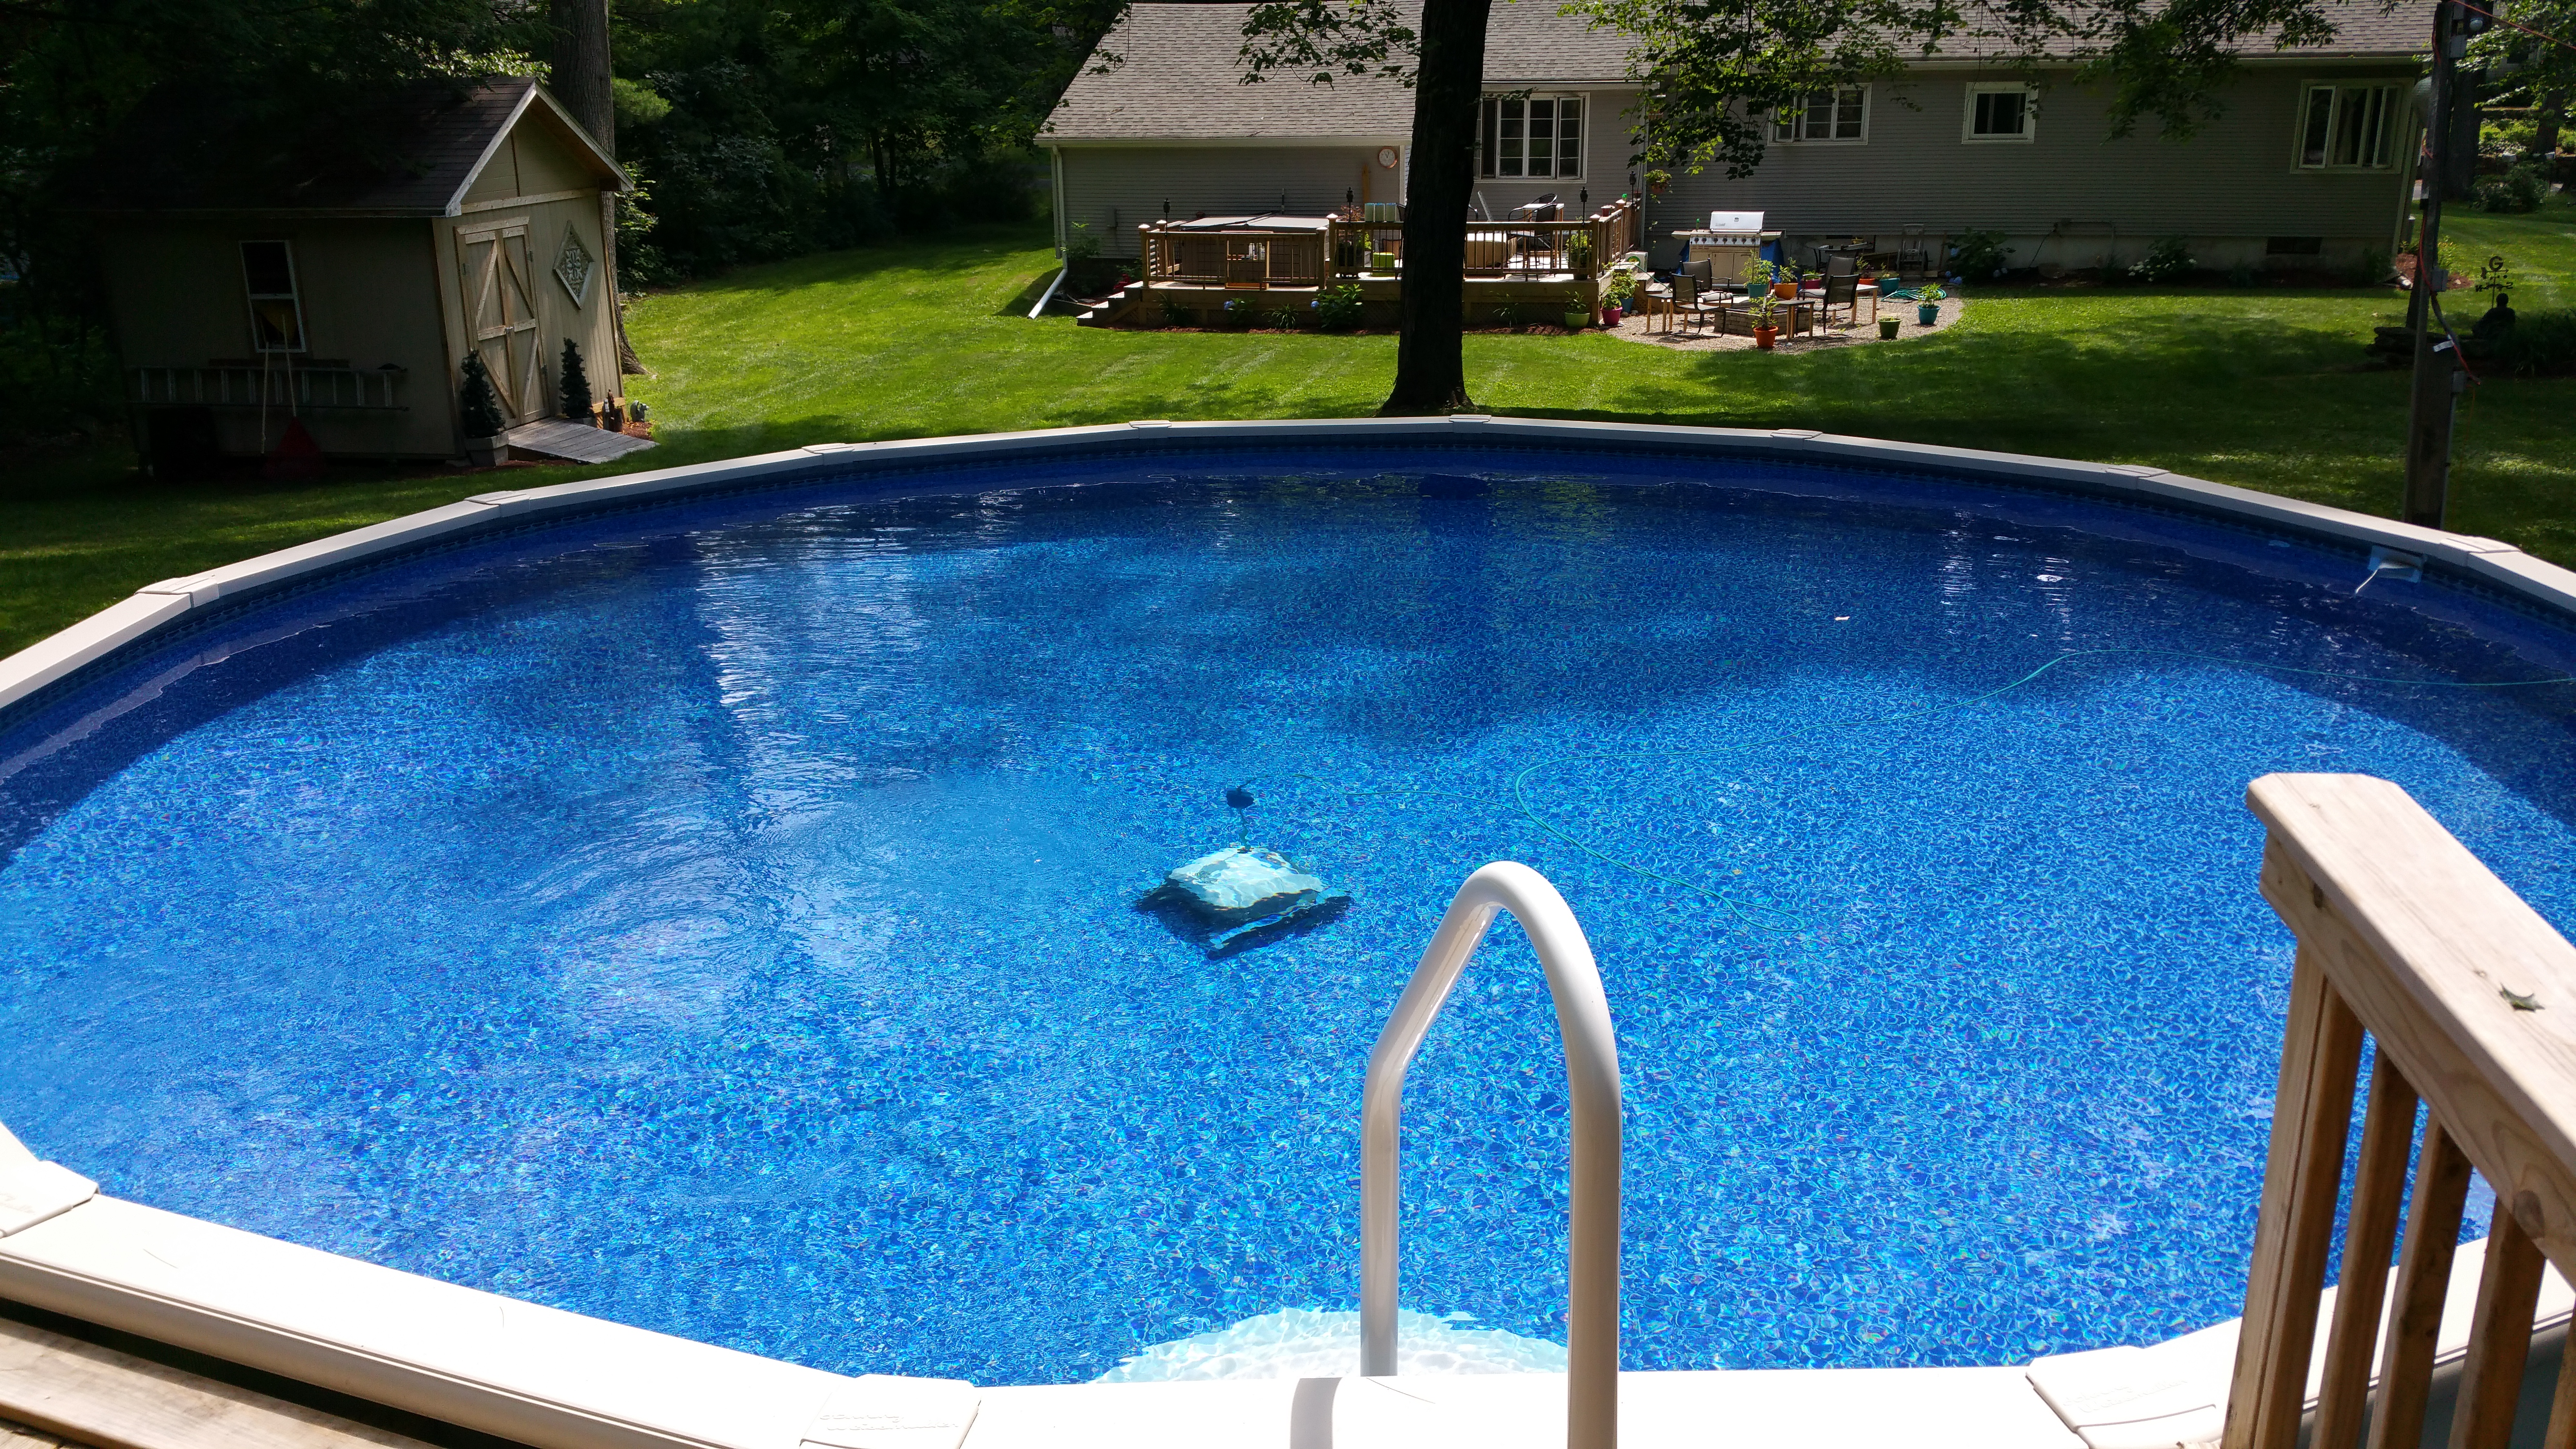 Above ground pool showroom teddy bear pools and spas - Above ground swimming pools pictures ...